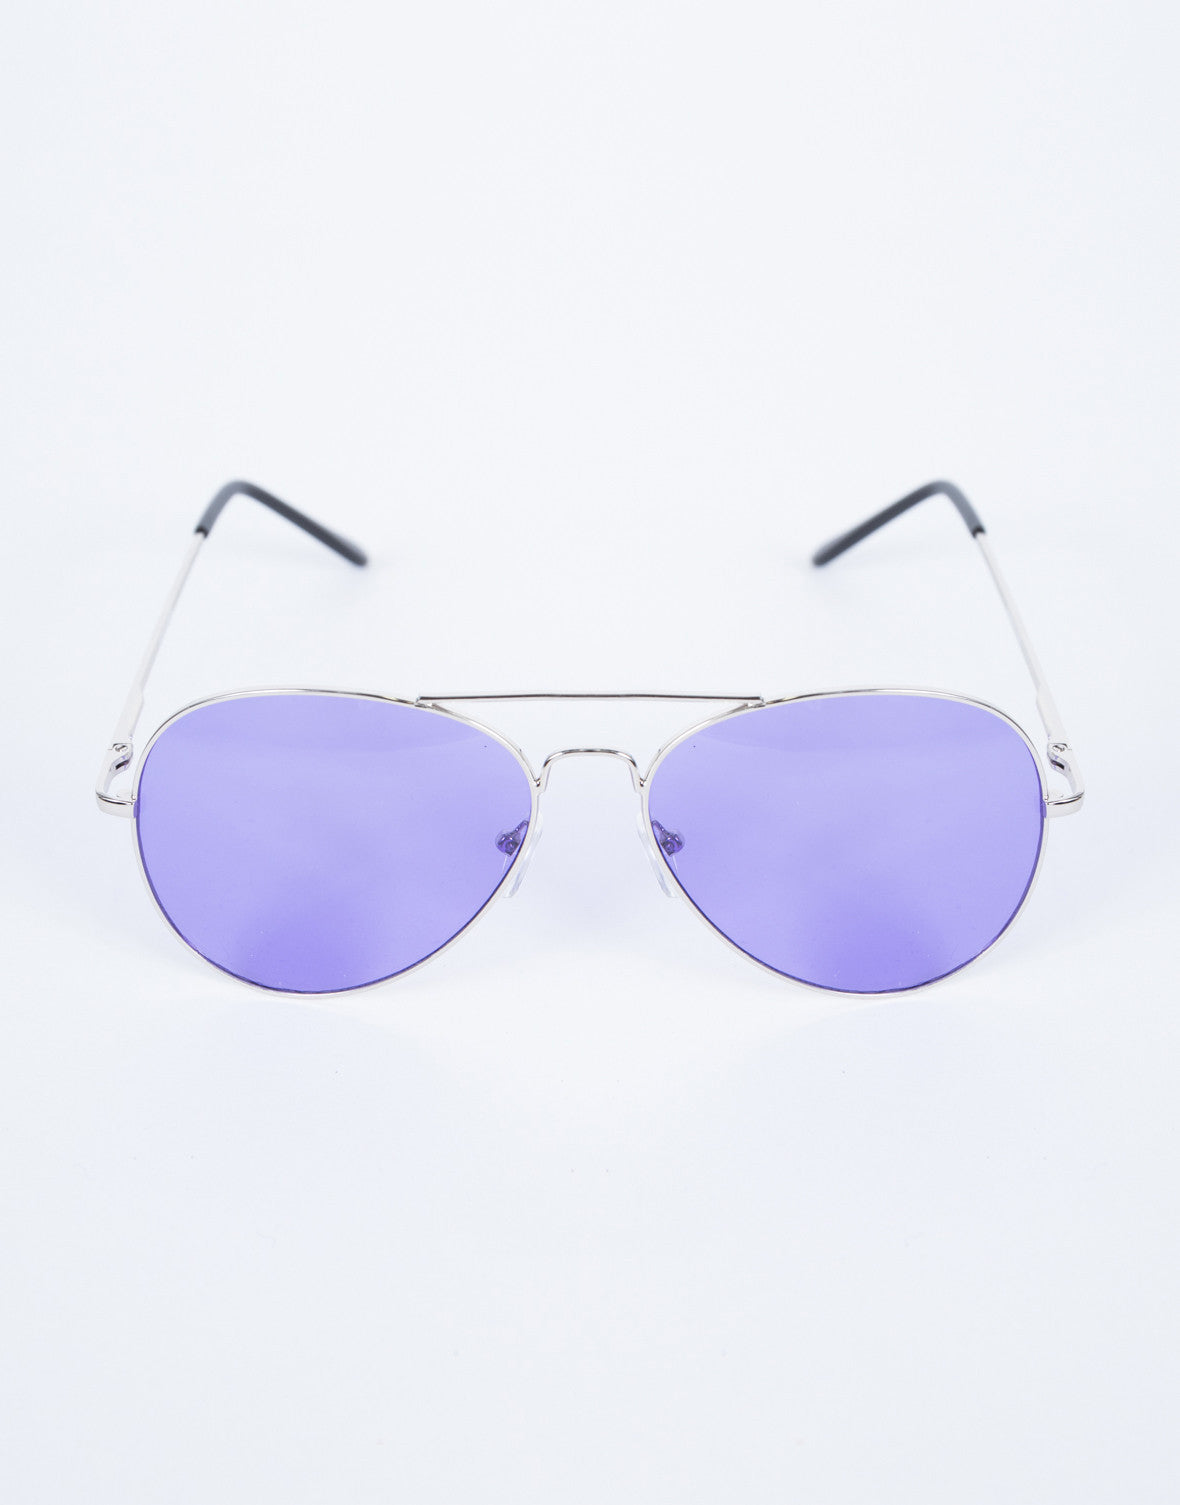 Purple Cooled Down Aviators - Top View